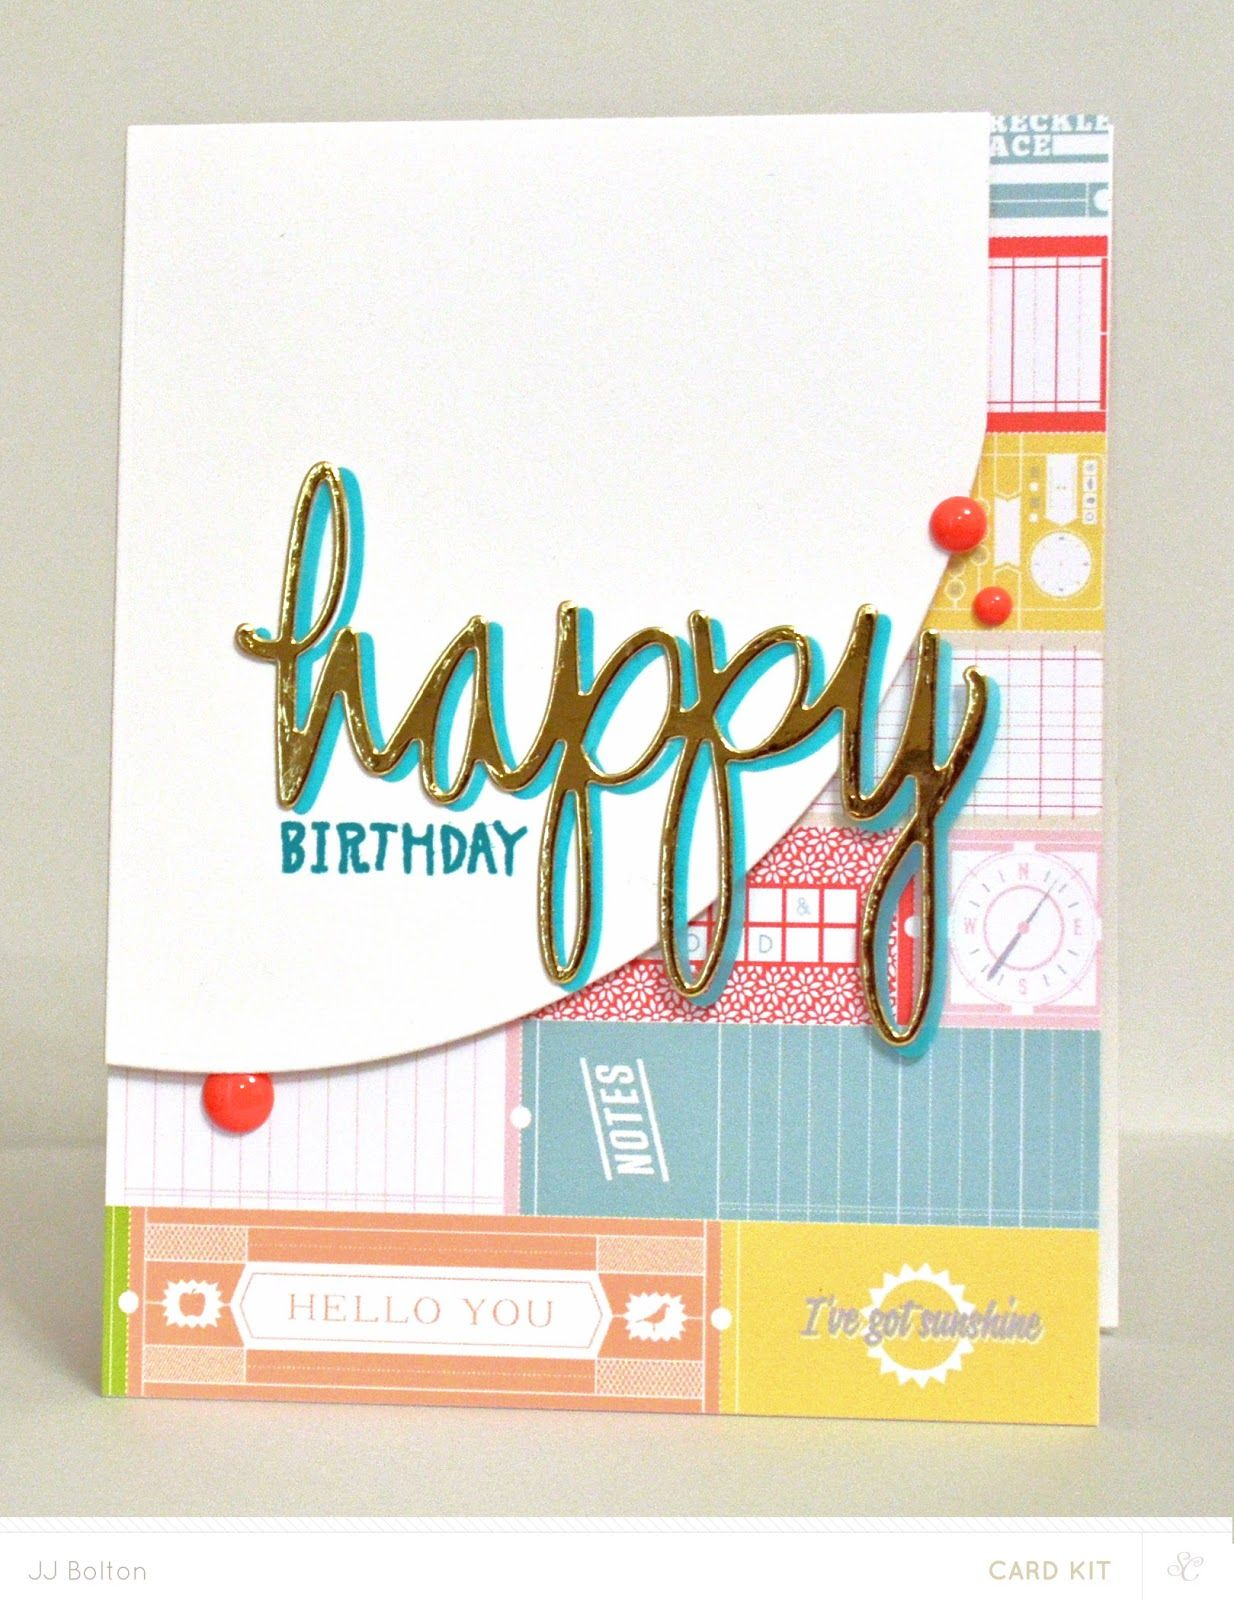 happy birthday card trick revealed ; happy-birthday-card-trick-revealed-da37031fd8a05ce20a2c7f5f820b9997